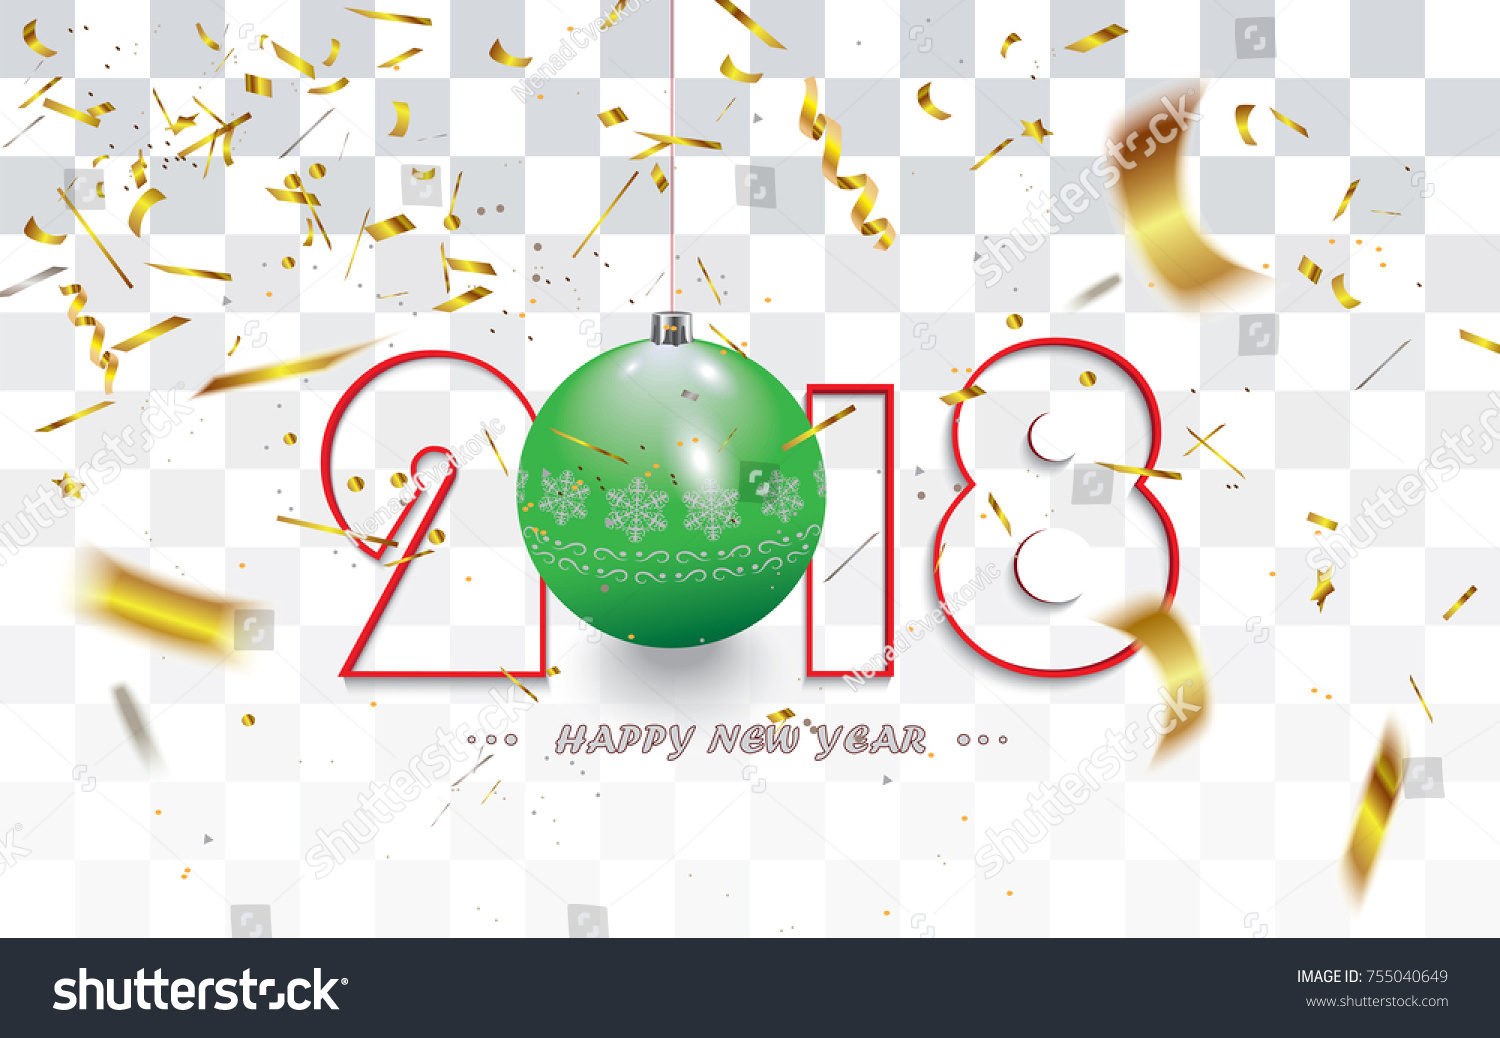 happy new year 2018 christmas card with golden transparent defocused confetti and decoration isolated on